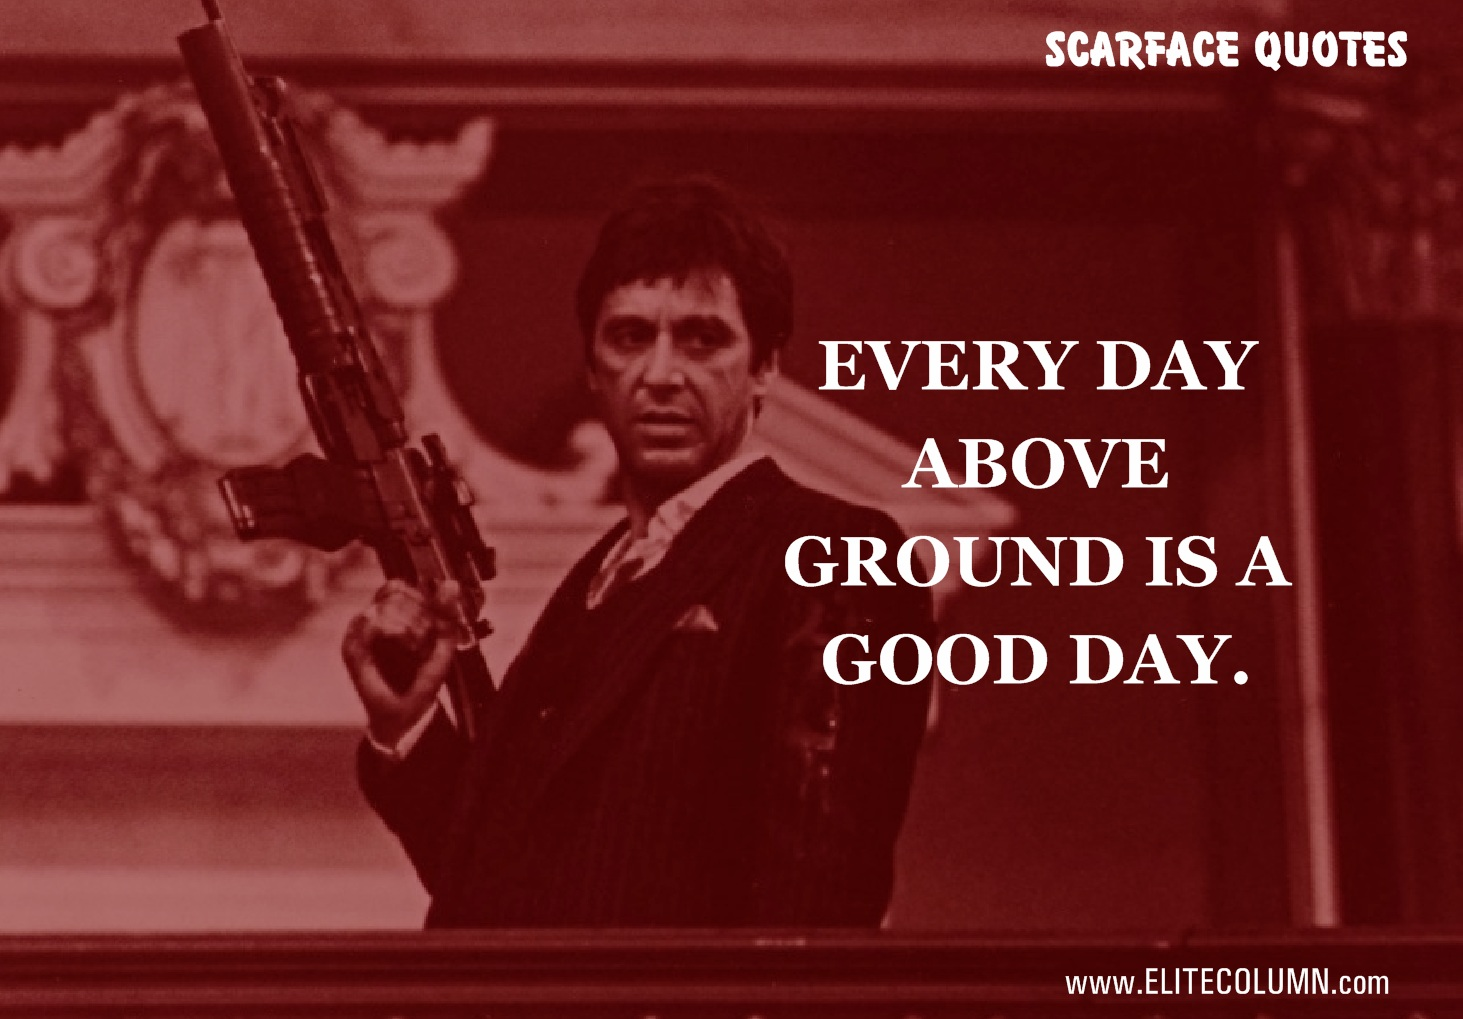 Scarface Quotes (12)